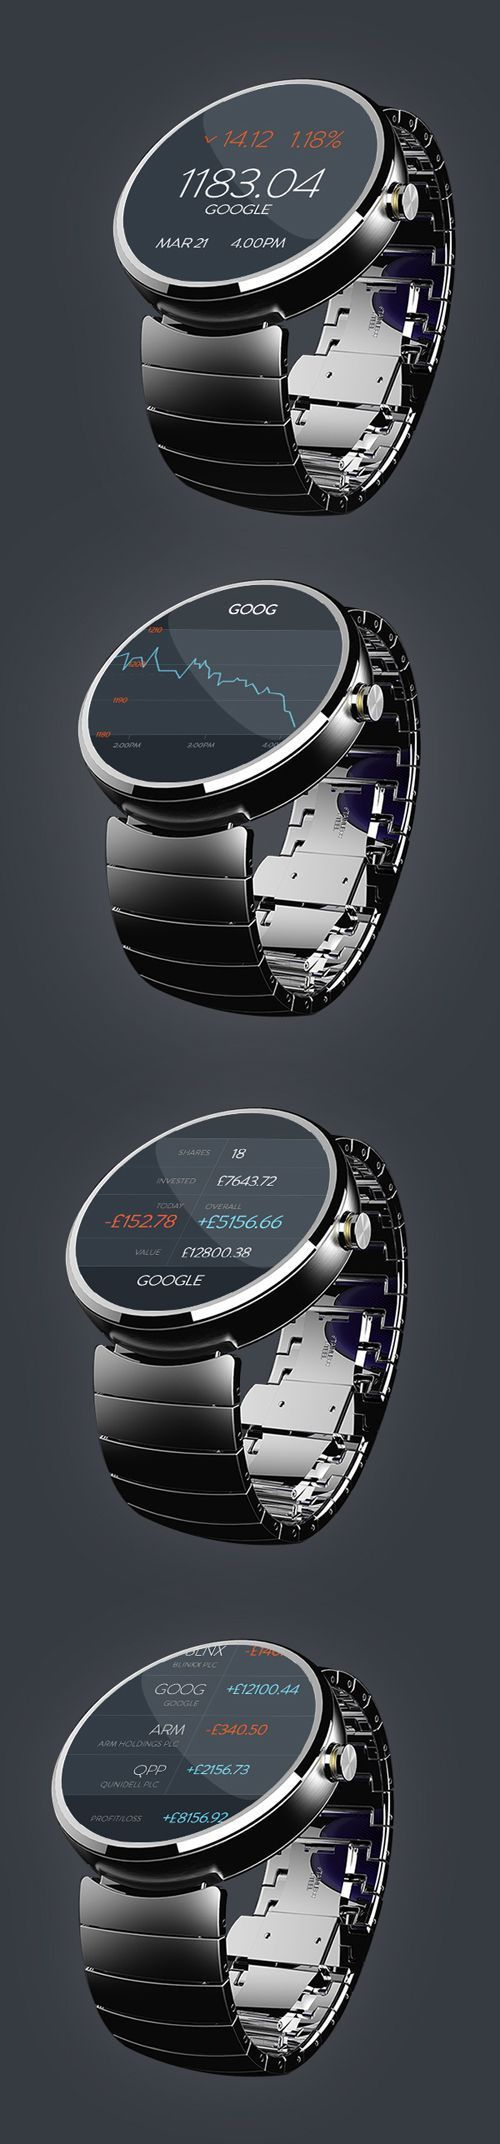 Moto 360 - The watch that will transform the wearable tech market!!!!